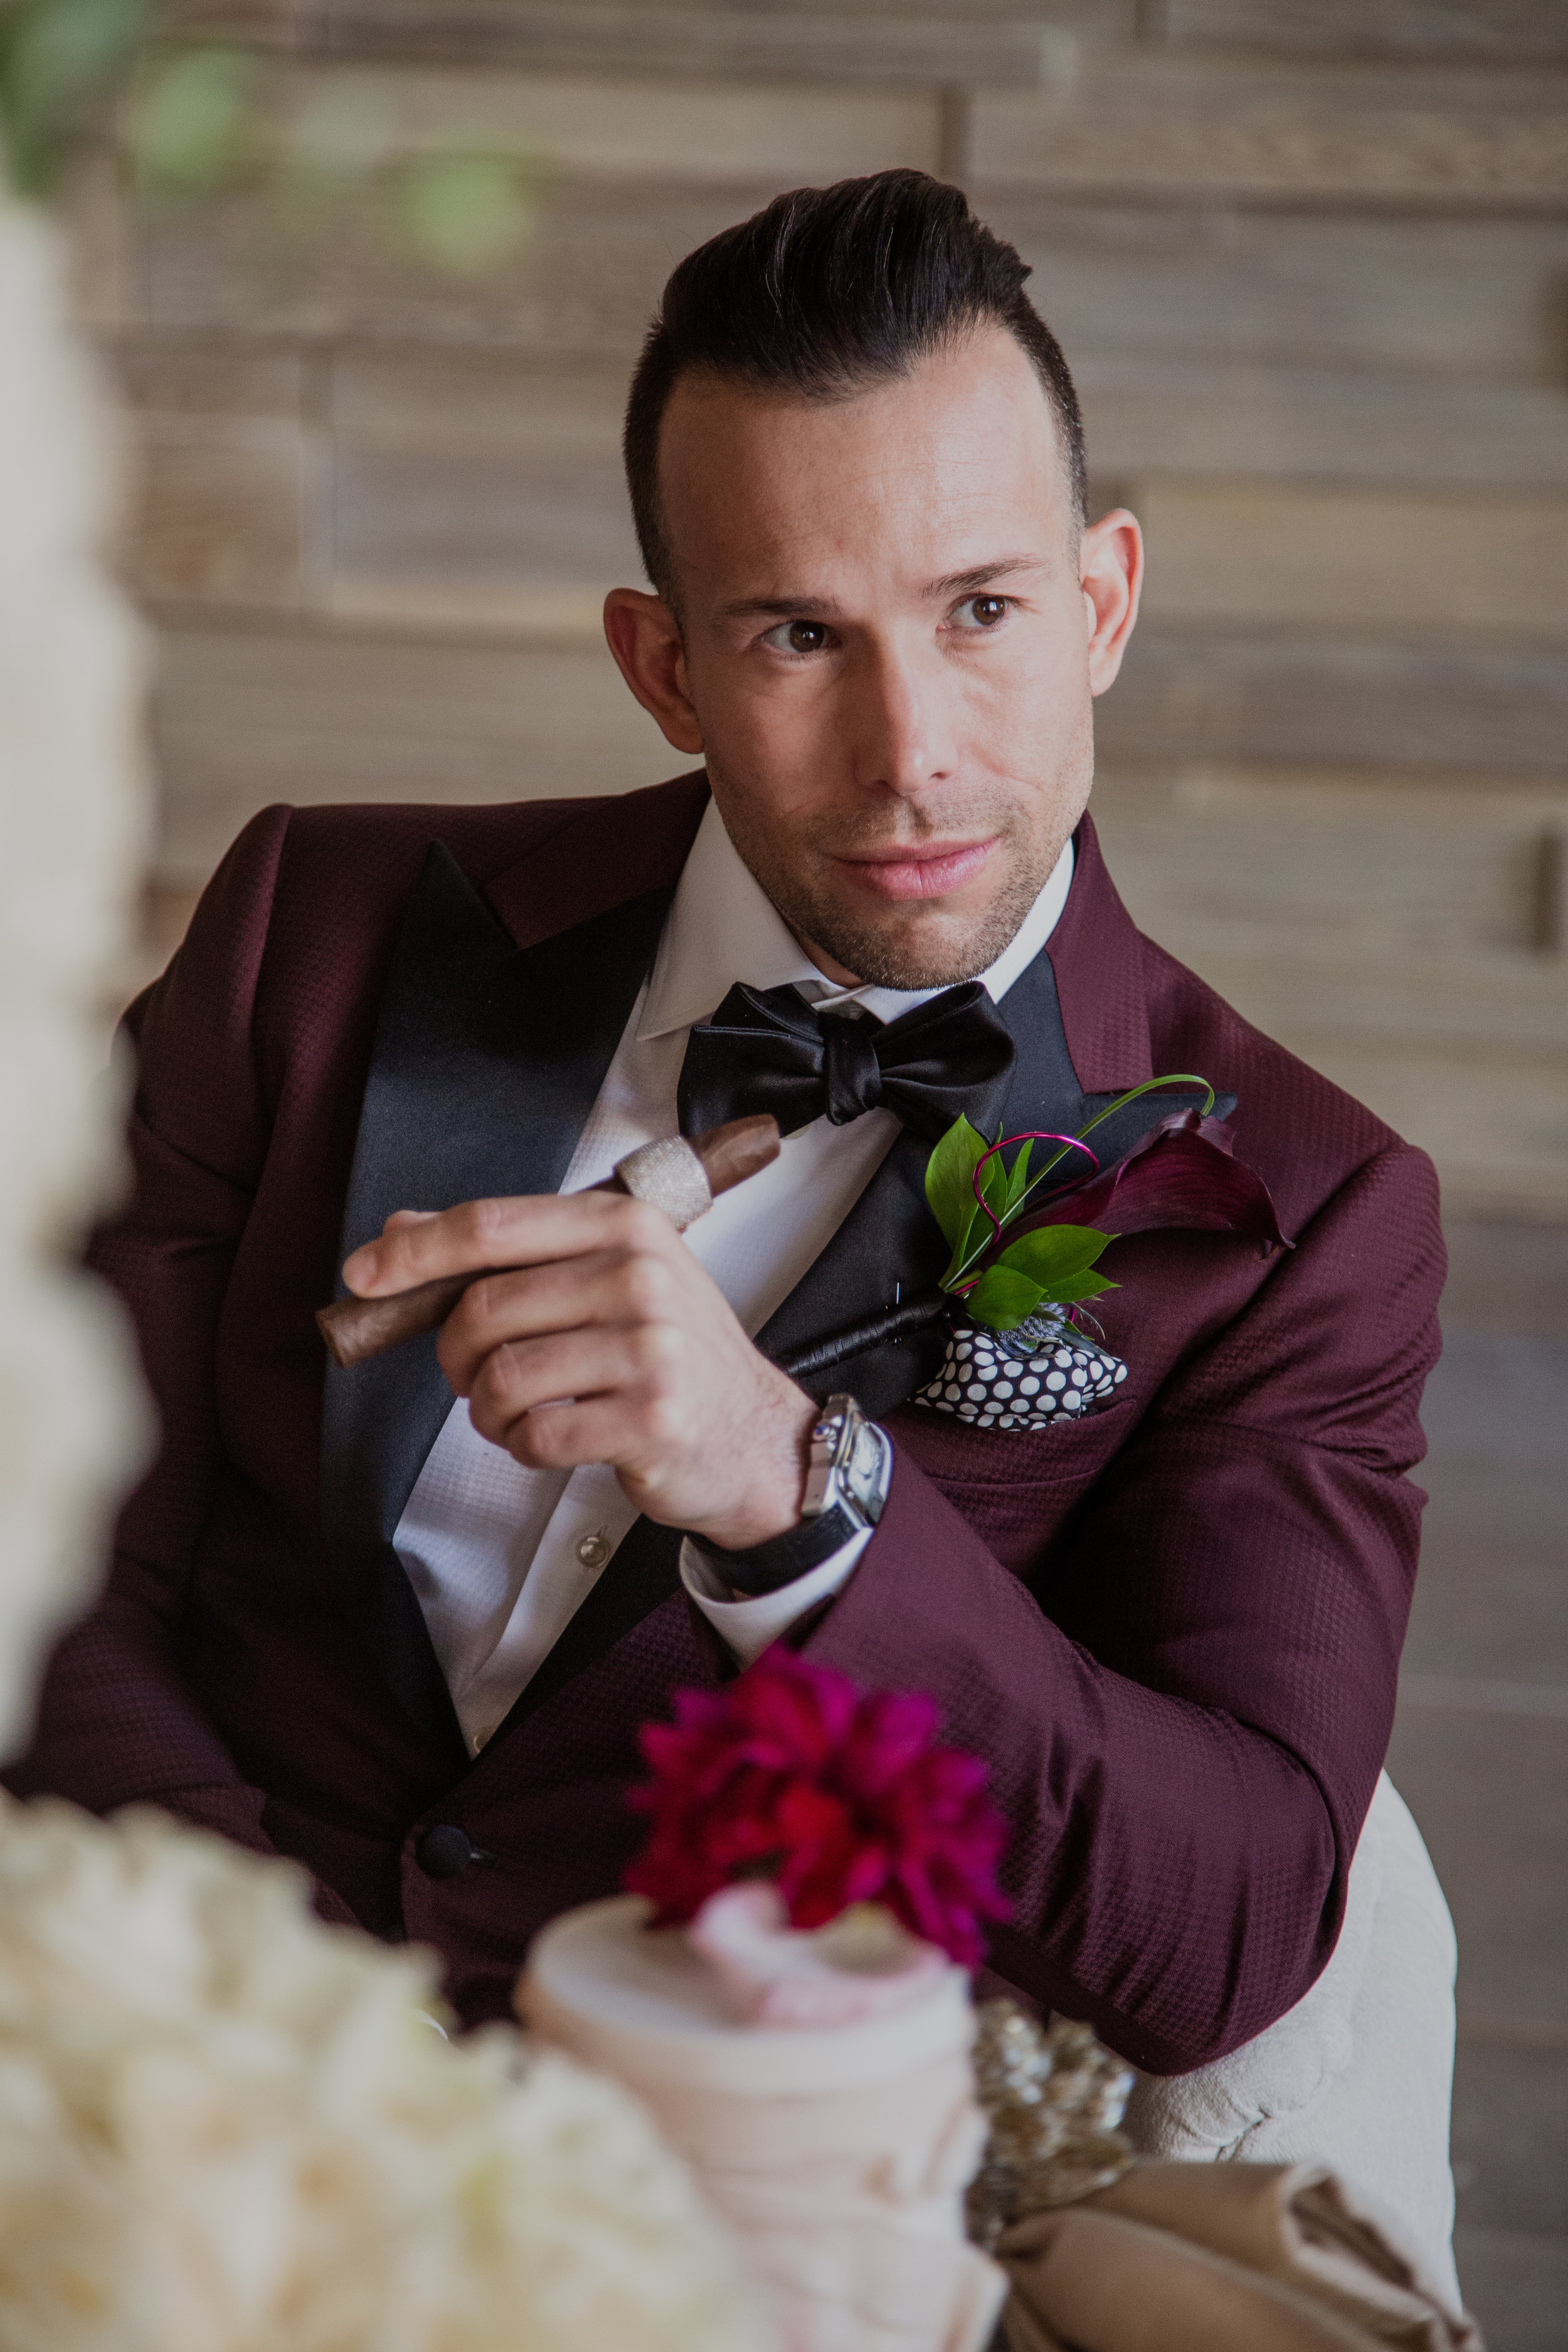 Groom with diamond cigar band at wedding. Las Vegas Wedding Planner & Event Designer  Andrea Eppolito Events  · Photography by  Adam Frazier Photo  · Video by  M Place Productions  · Floral & Decor by  DBD Las Vegas  · Venue  ARIA Primrose Ballroom  · Cigar Band by  Royal Cigar Company  and  Jason of Beverly Hills  · Beauty by  Glammed Up Las Vegas  · Dress by  Vera Wang  · Salon  Couture Bride Las Vegas  · Shoes  Bella Belle Shoes  · Bride  Katrina May Armenta  · Groom  Lucas Cuevas